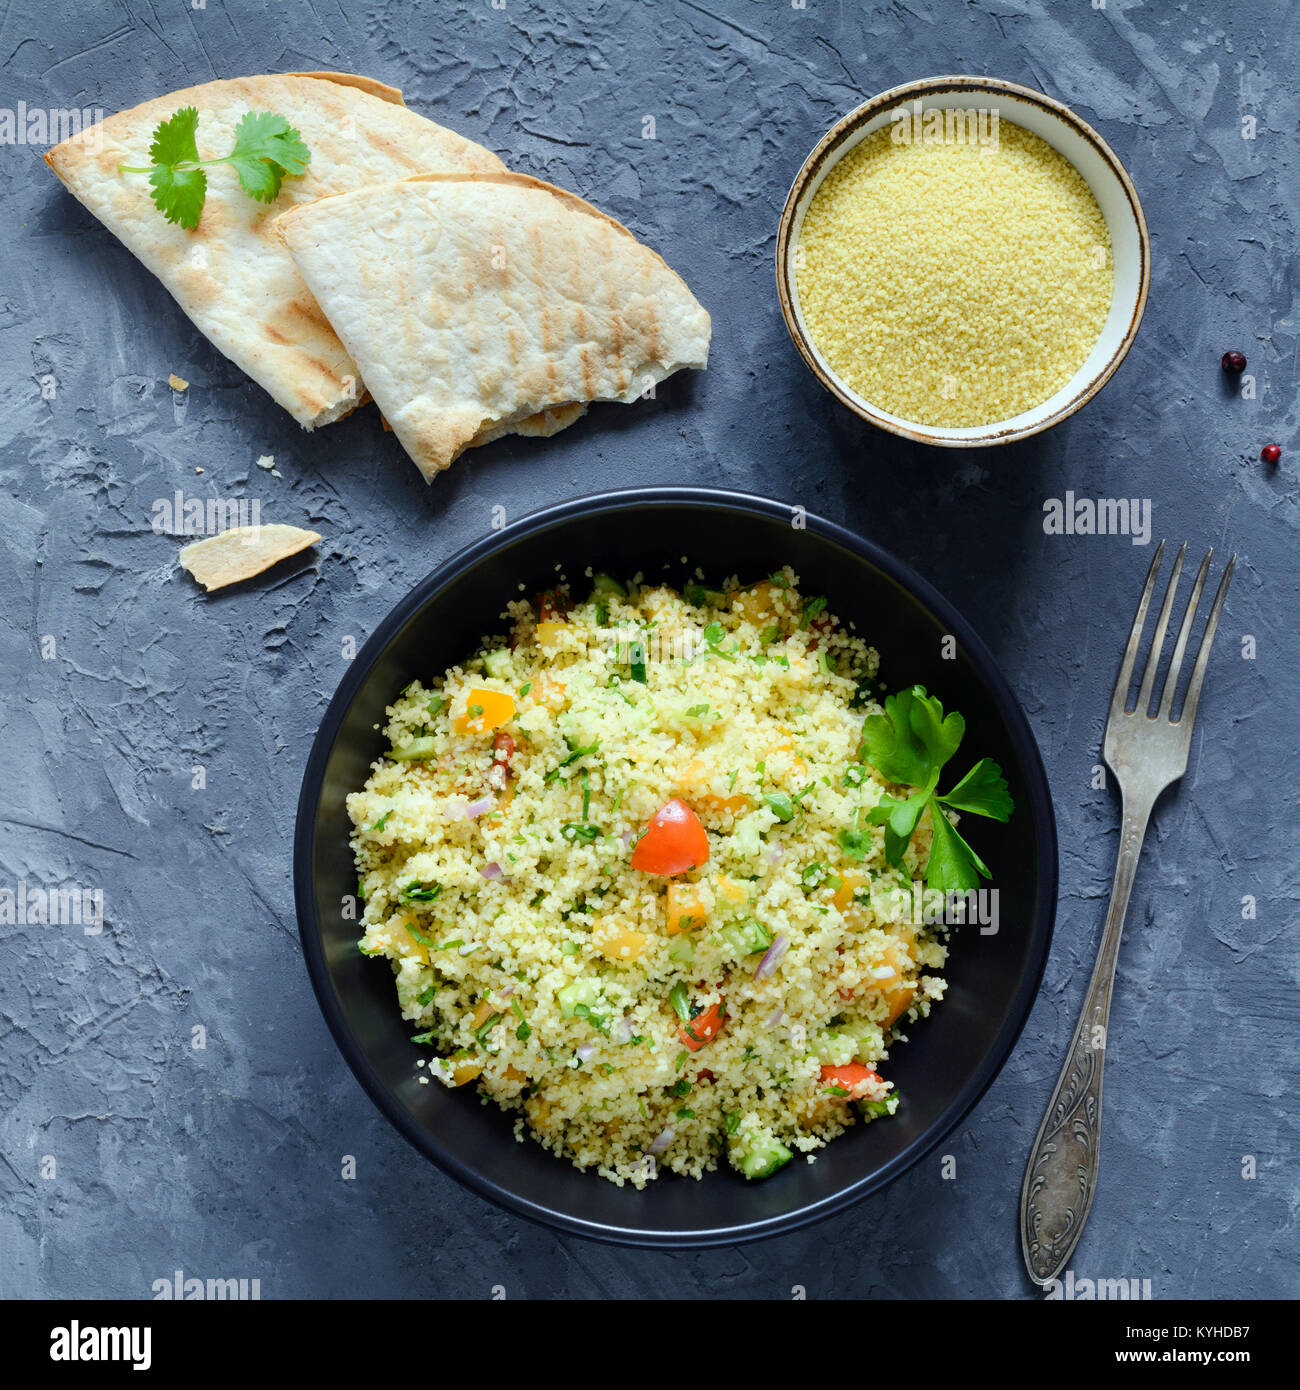 Tabbouleh salad and flatbread on concrete background. Lebanese, arabic cuisine. Healthy vegan cous cous salad in Stock Photo